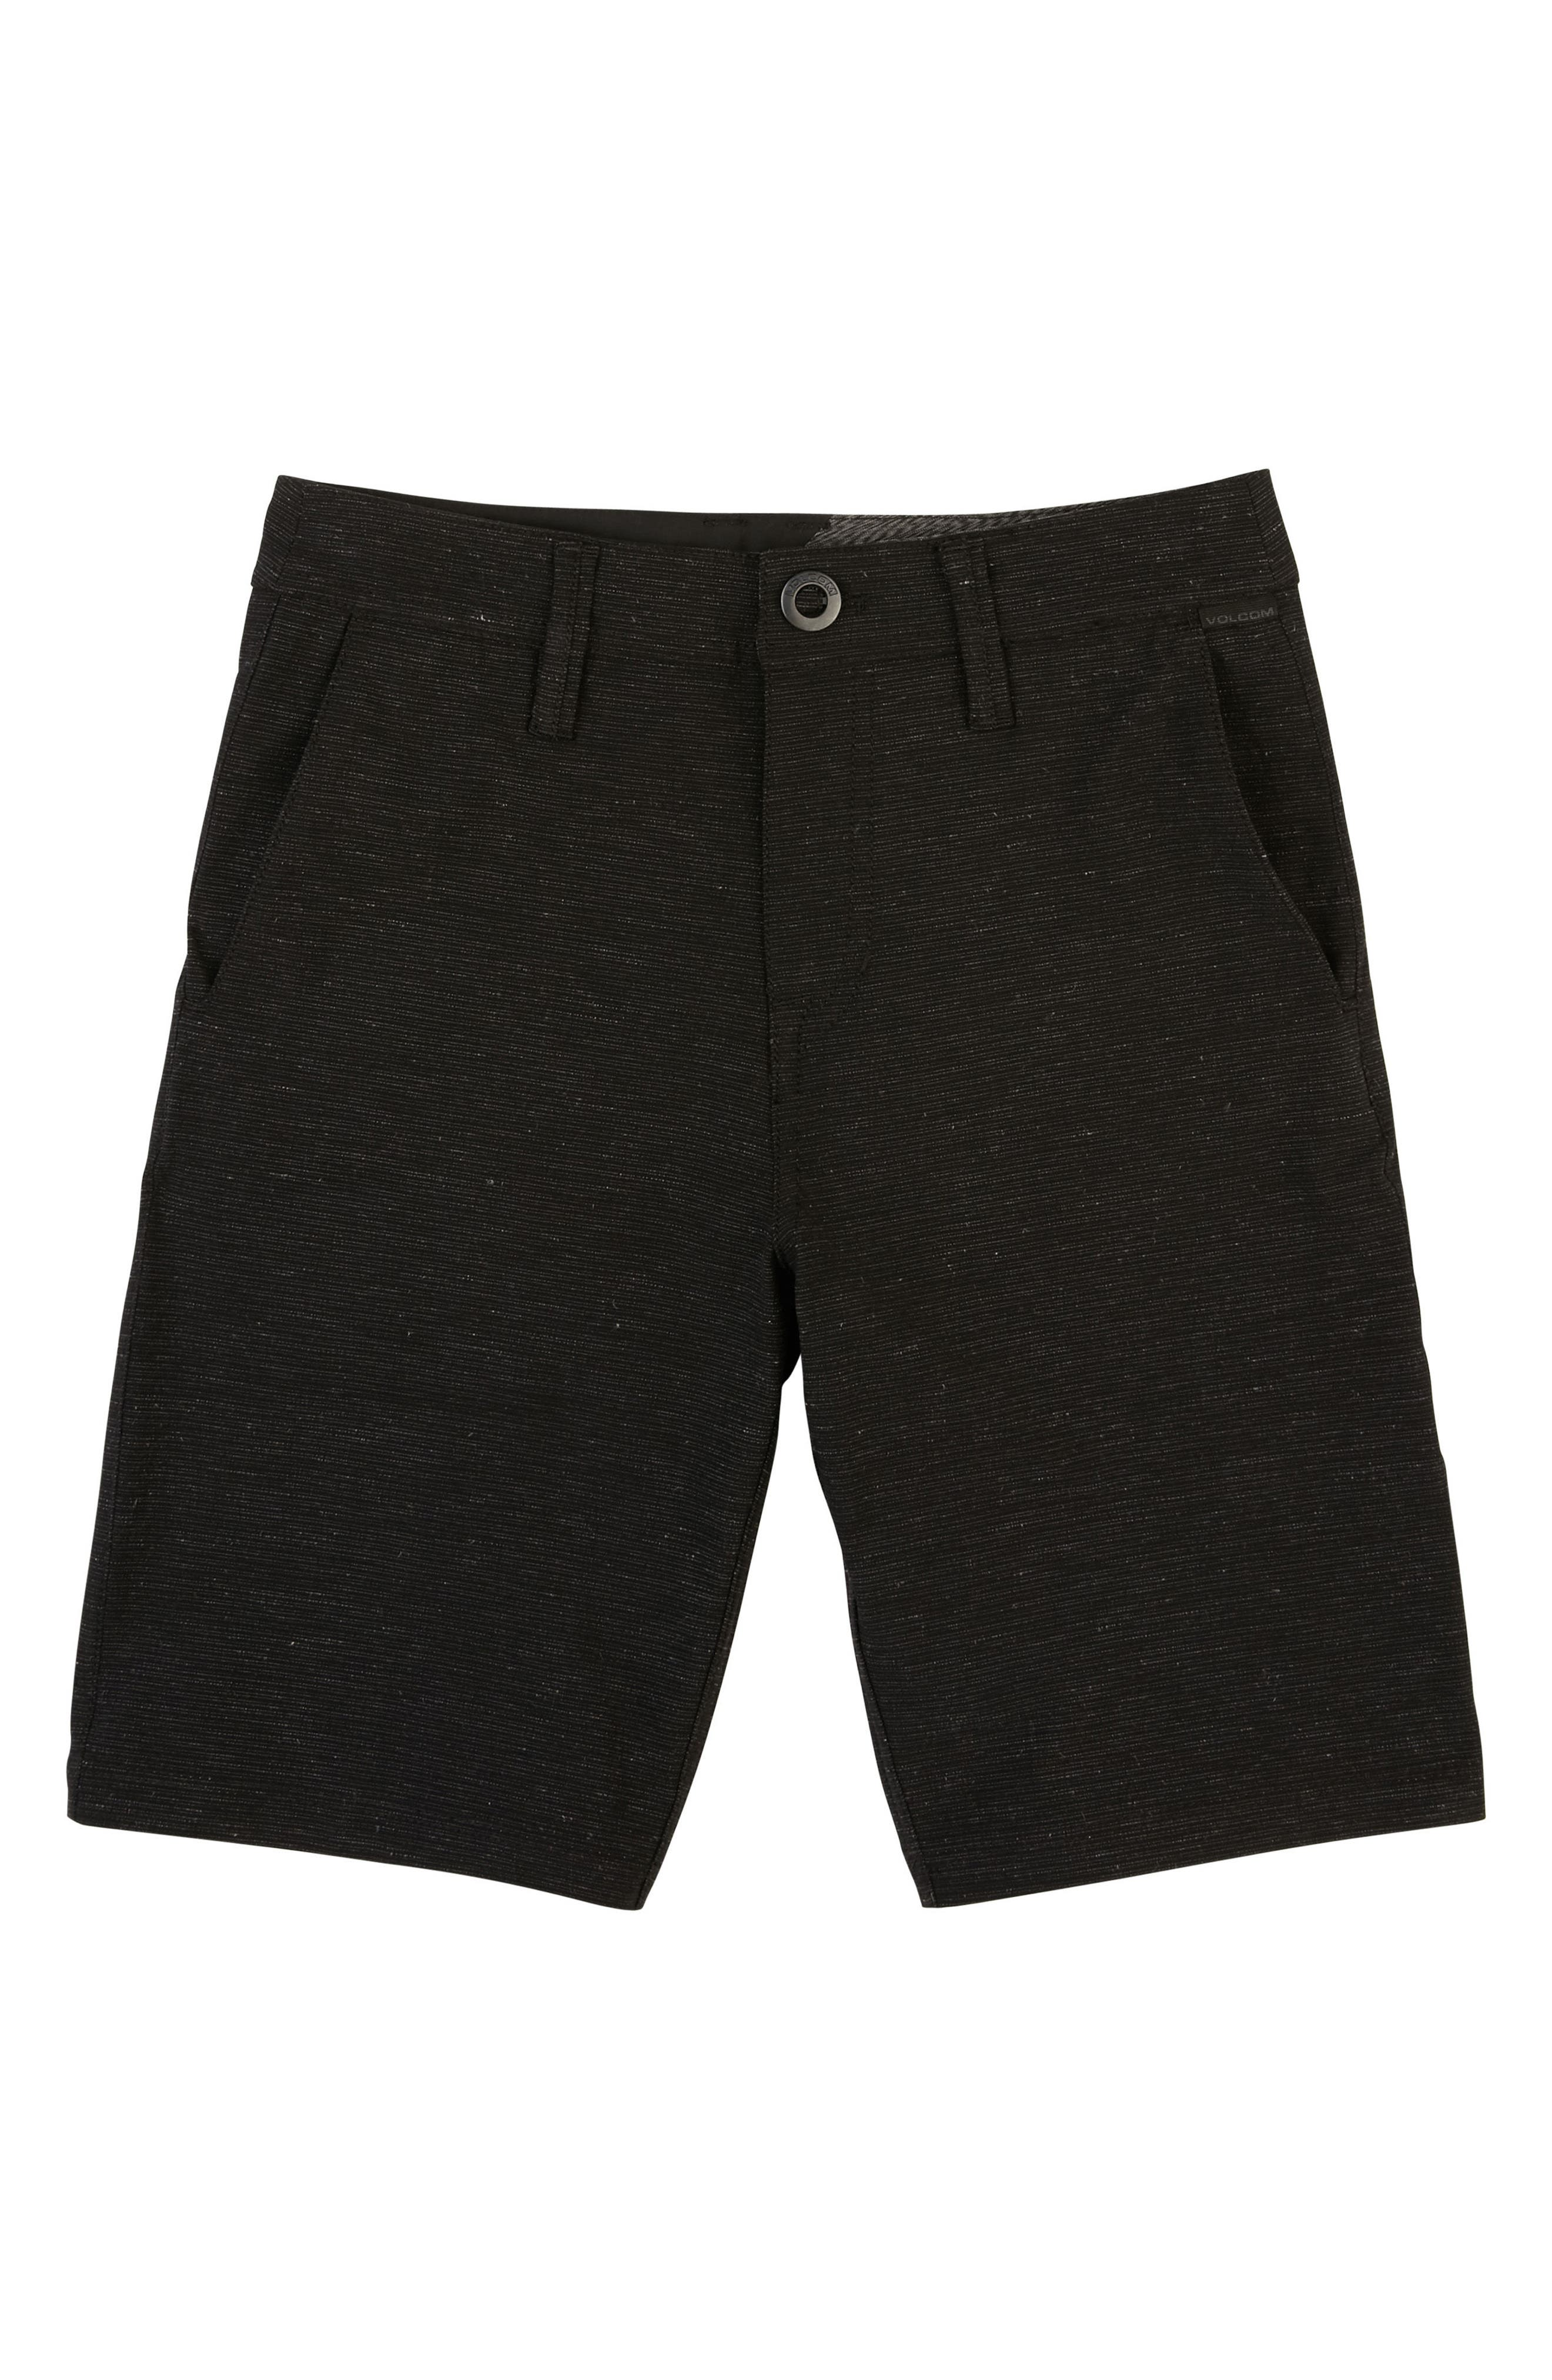 Surf N' Turf Slub Hybrid Shorts,                             Main thumbnail 1, color,                             Black